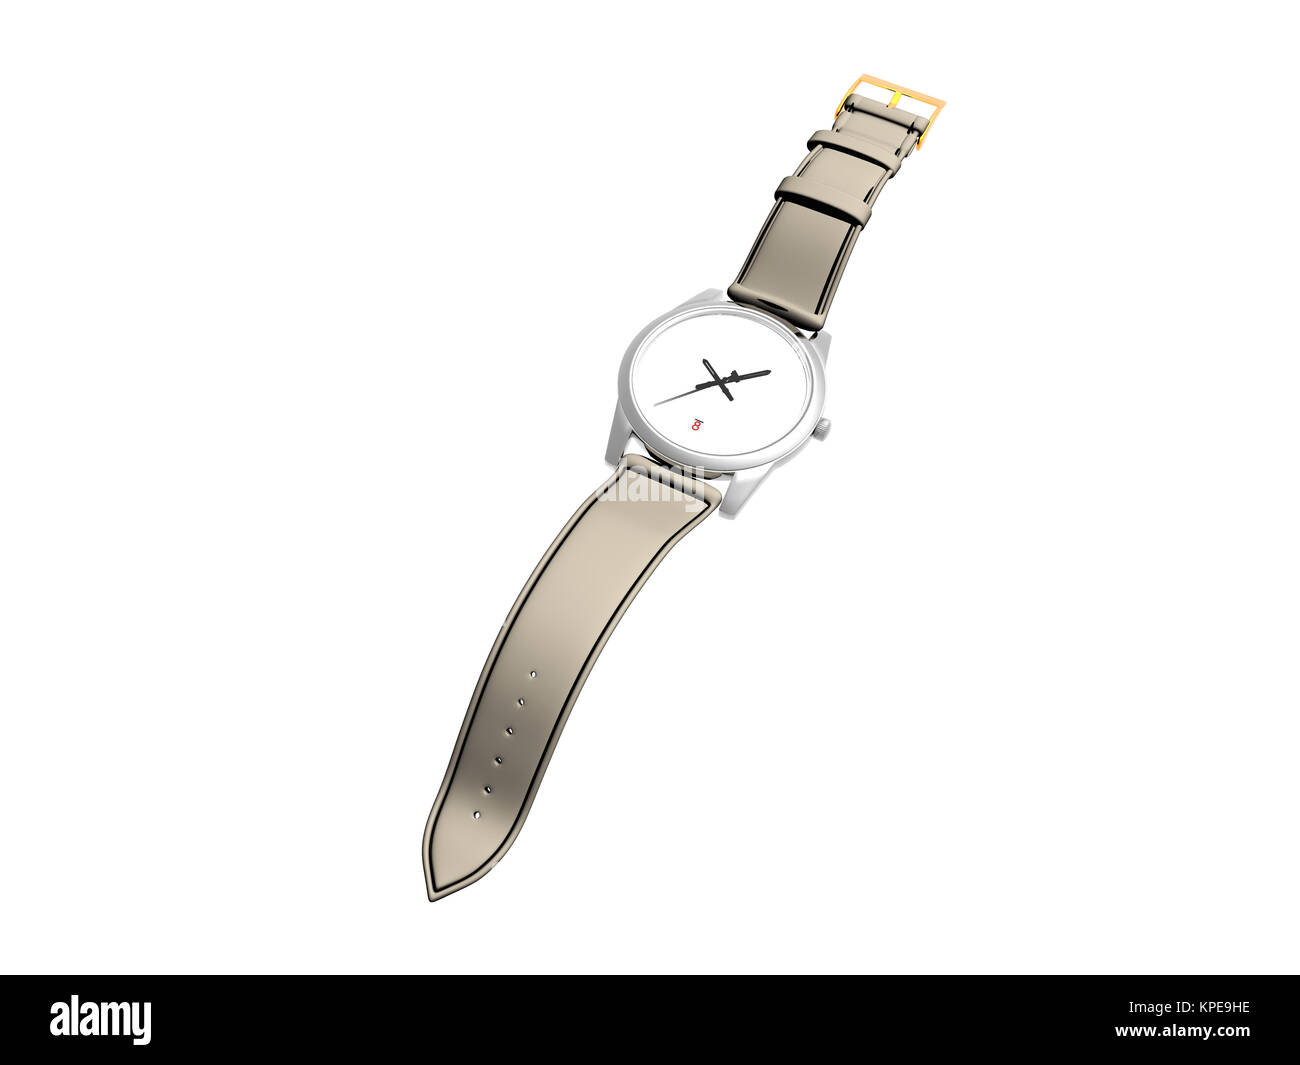 exempted watch - Stock Image